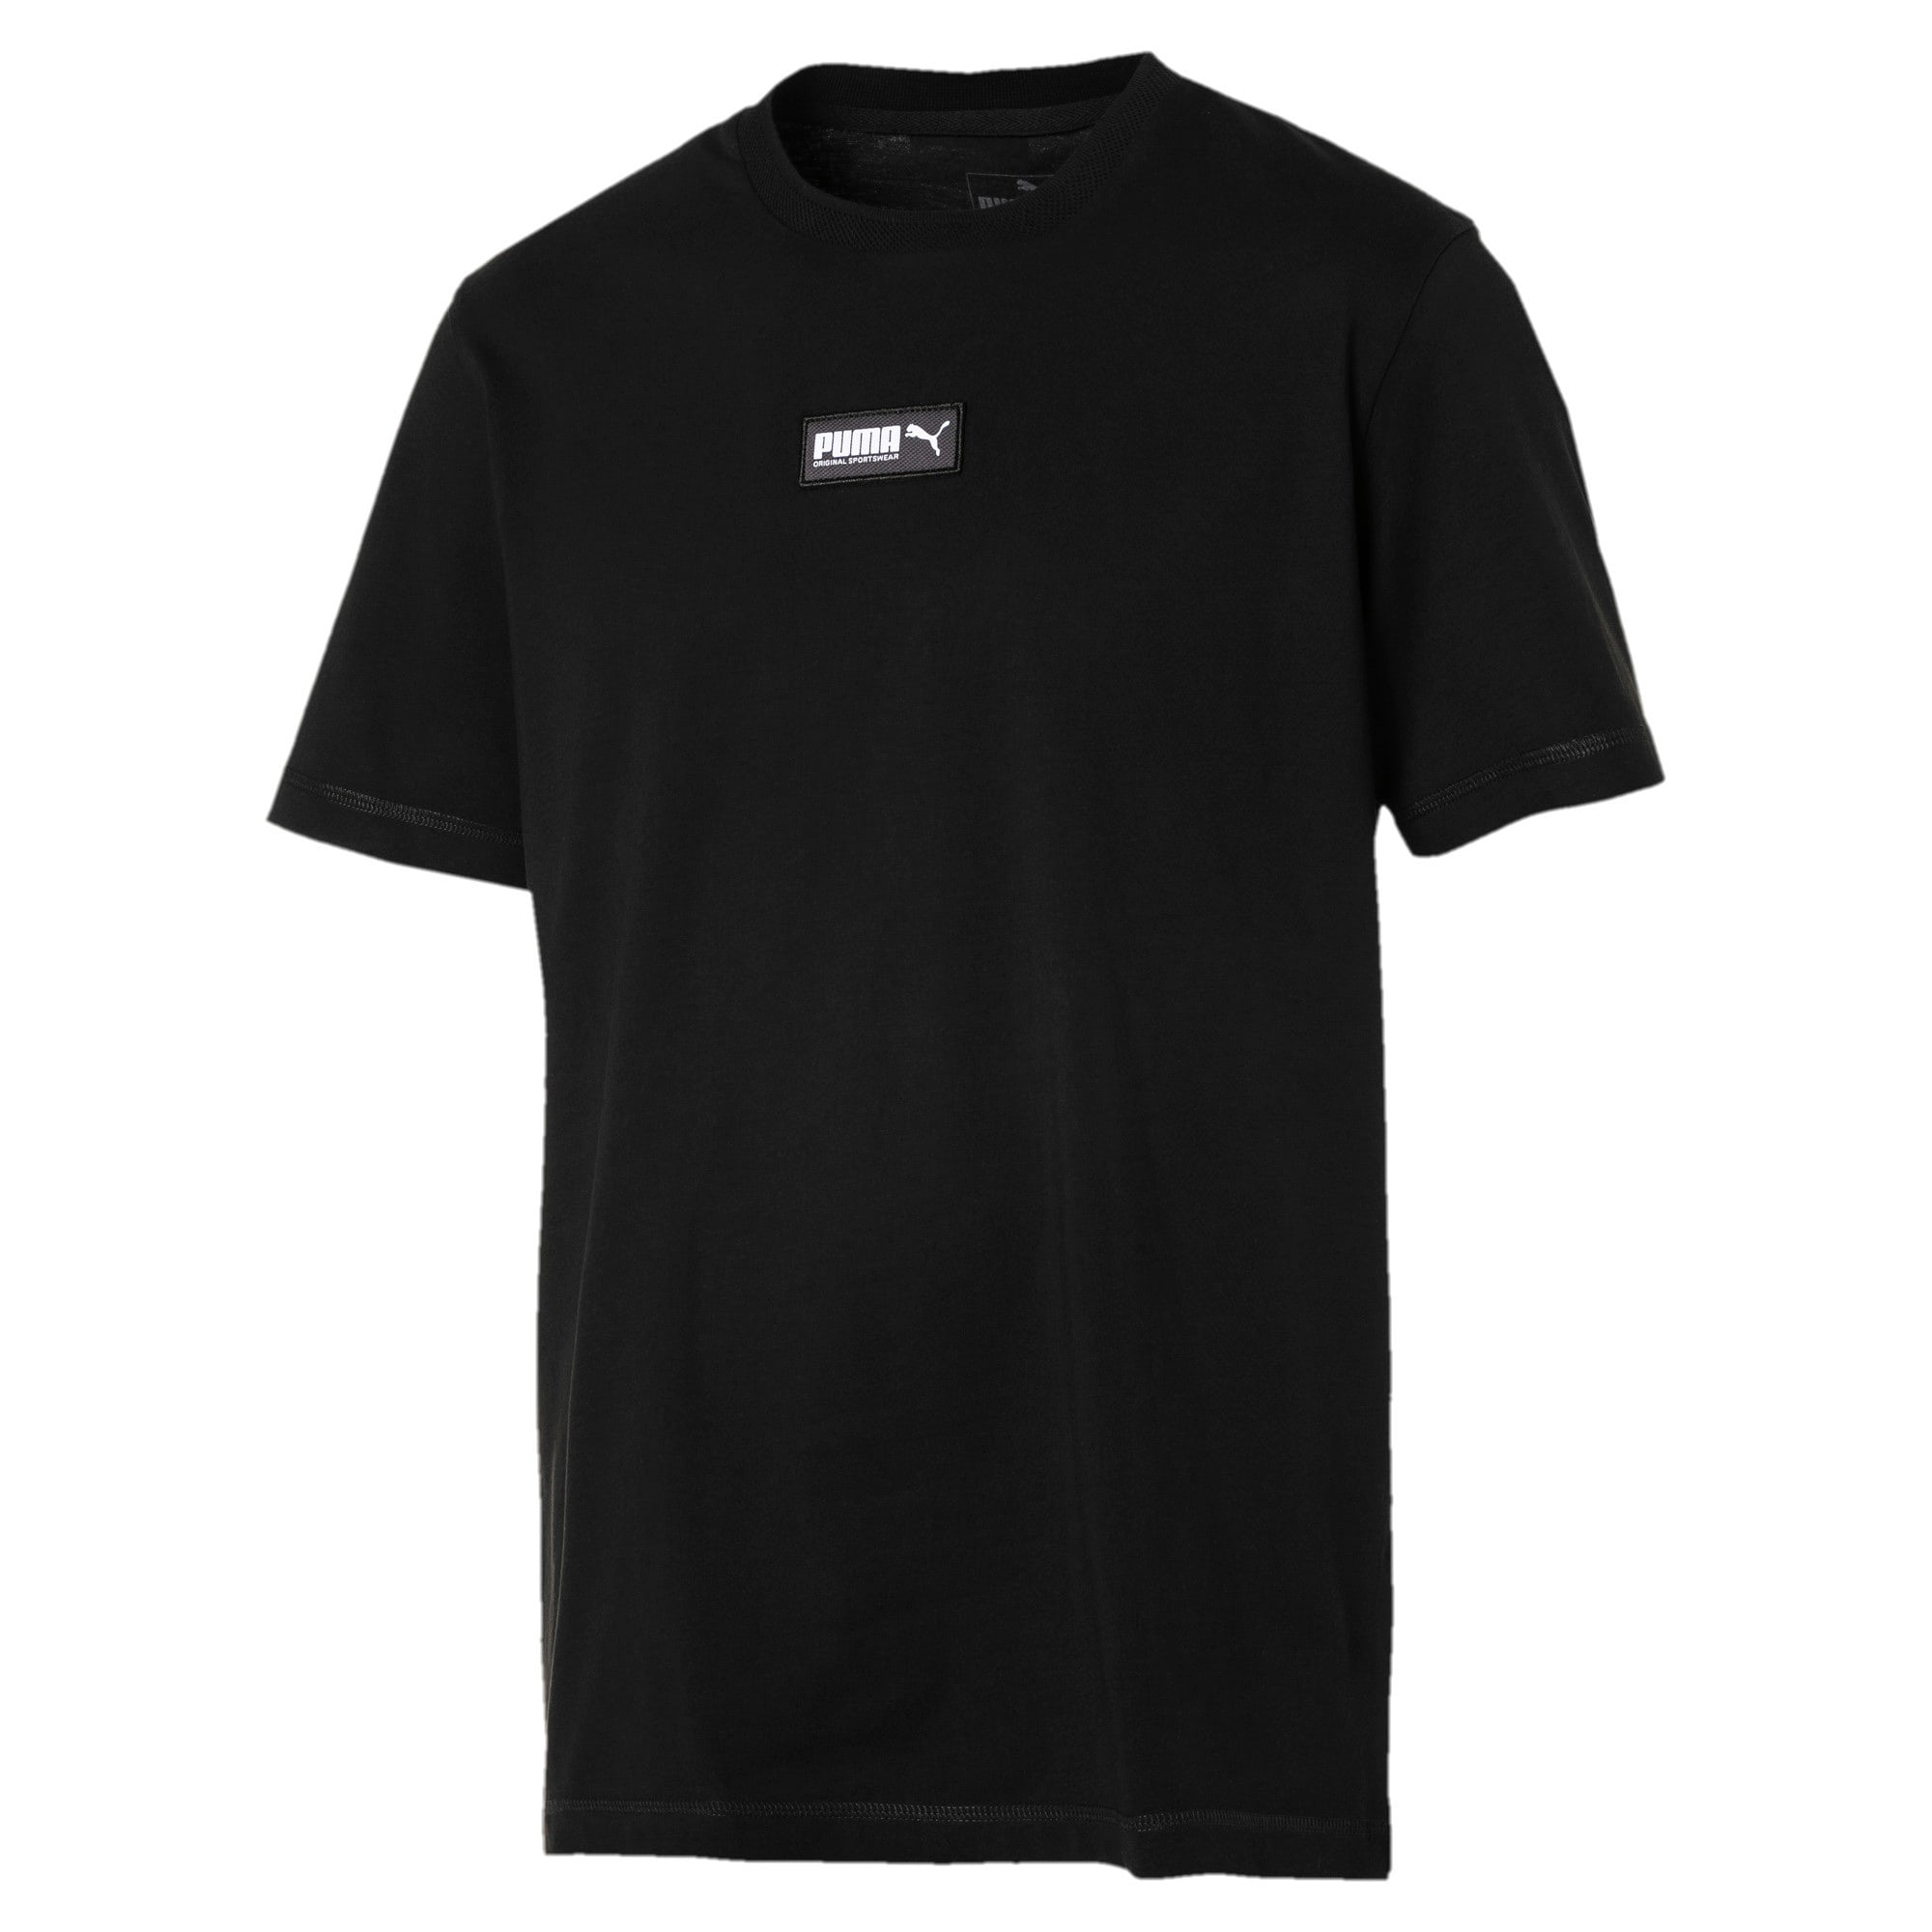 Fusion Short Sleeve Men's Tee, Cotton Black, large